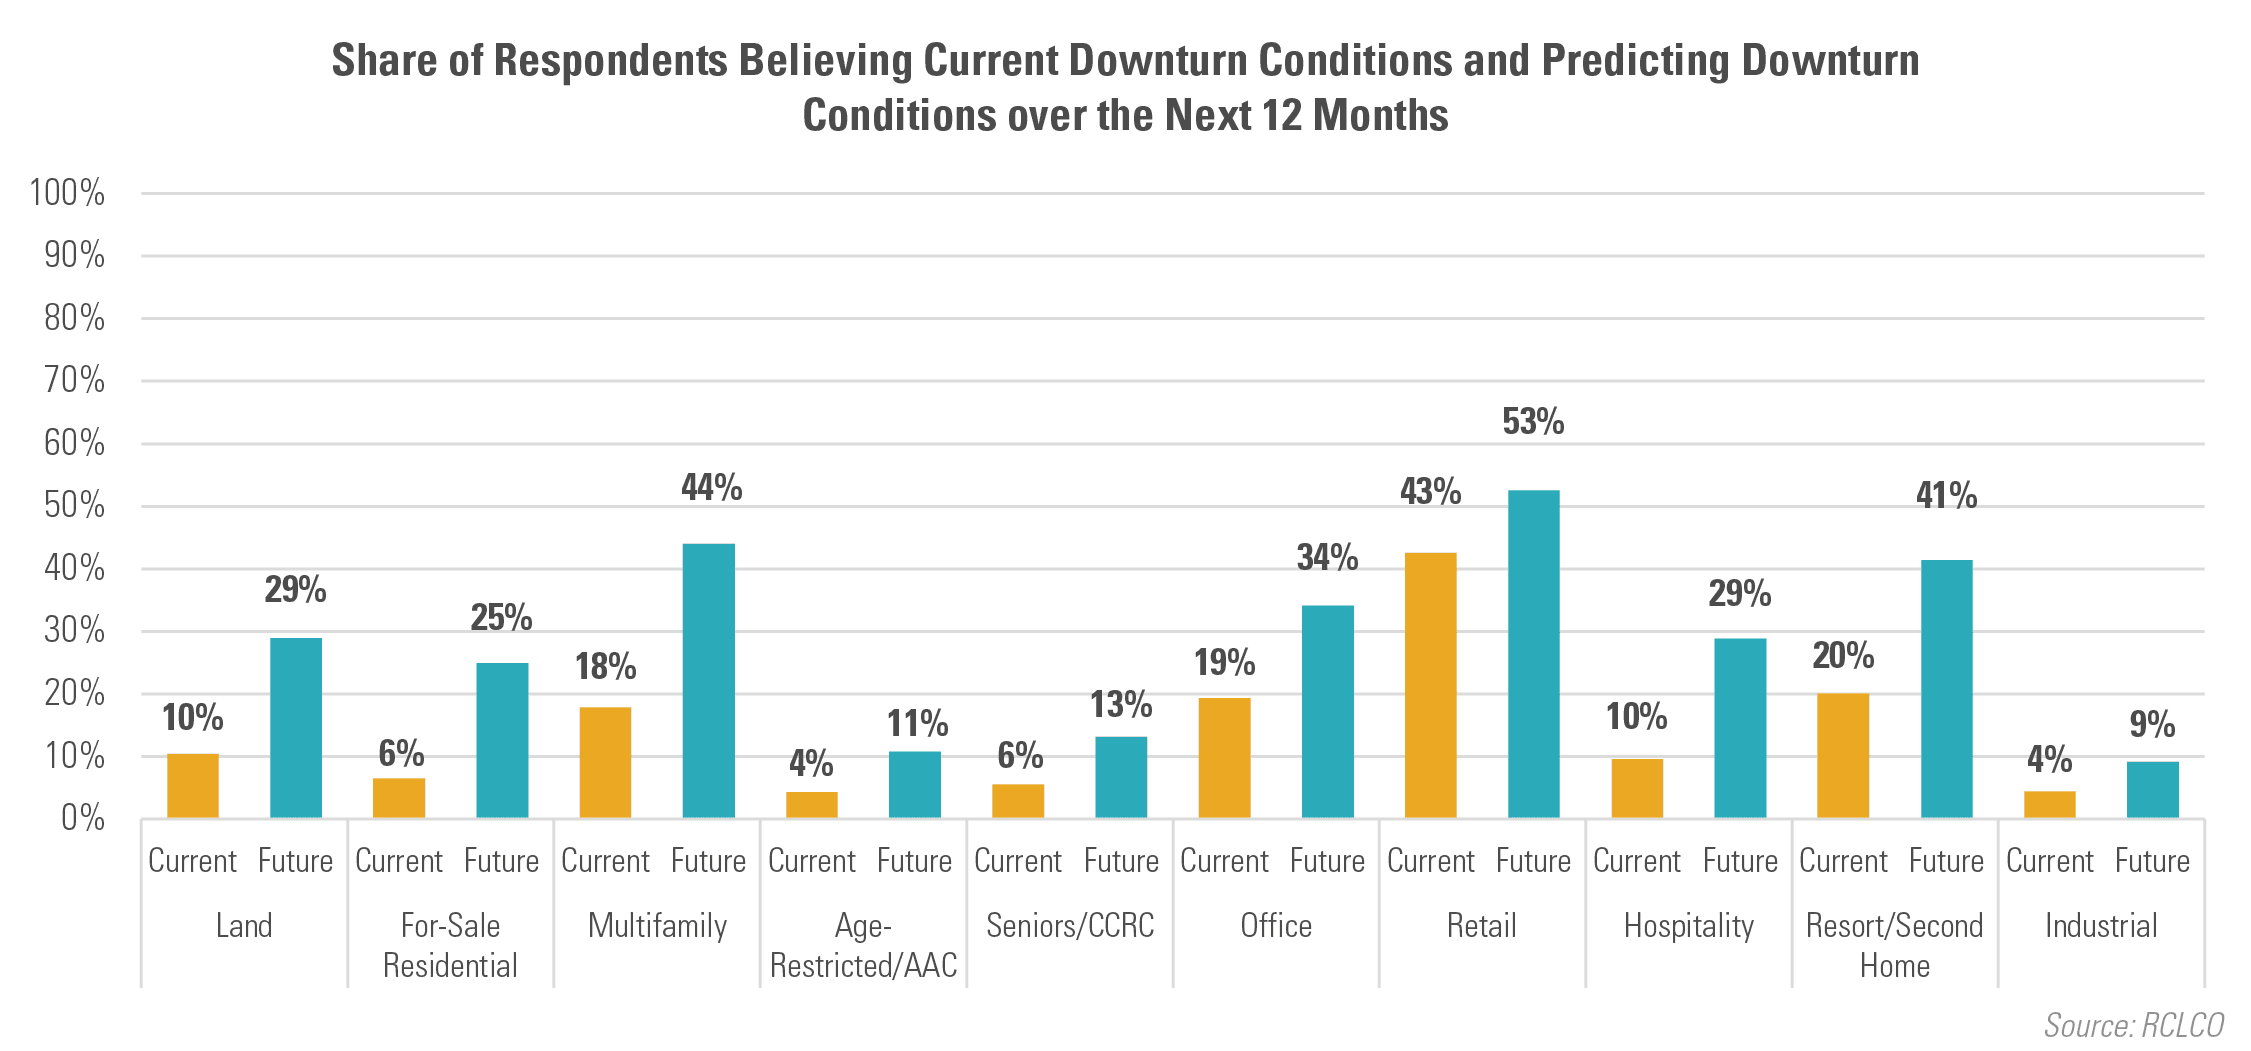 Share of Respondents Believing Current Downturn Conditions and Predicting Downturn Conditions over the Next 12 Months